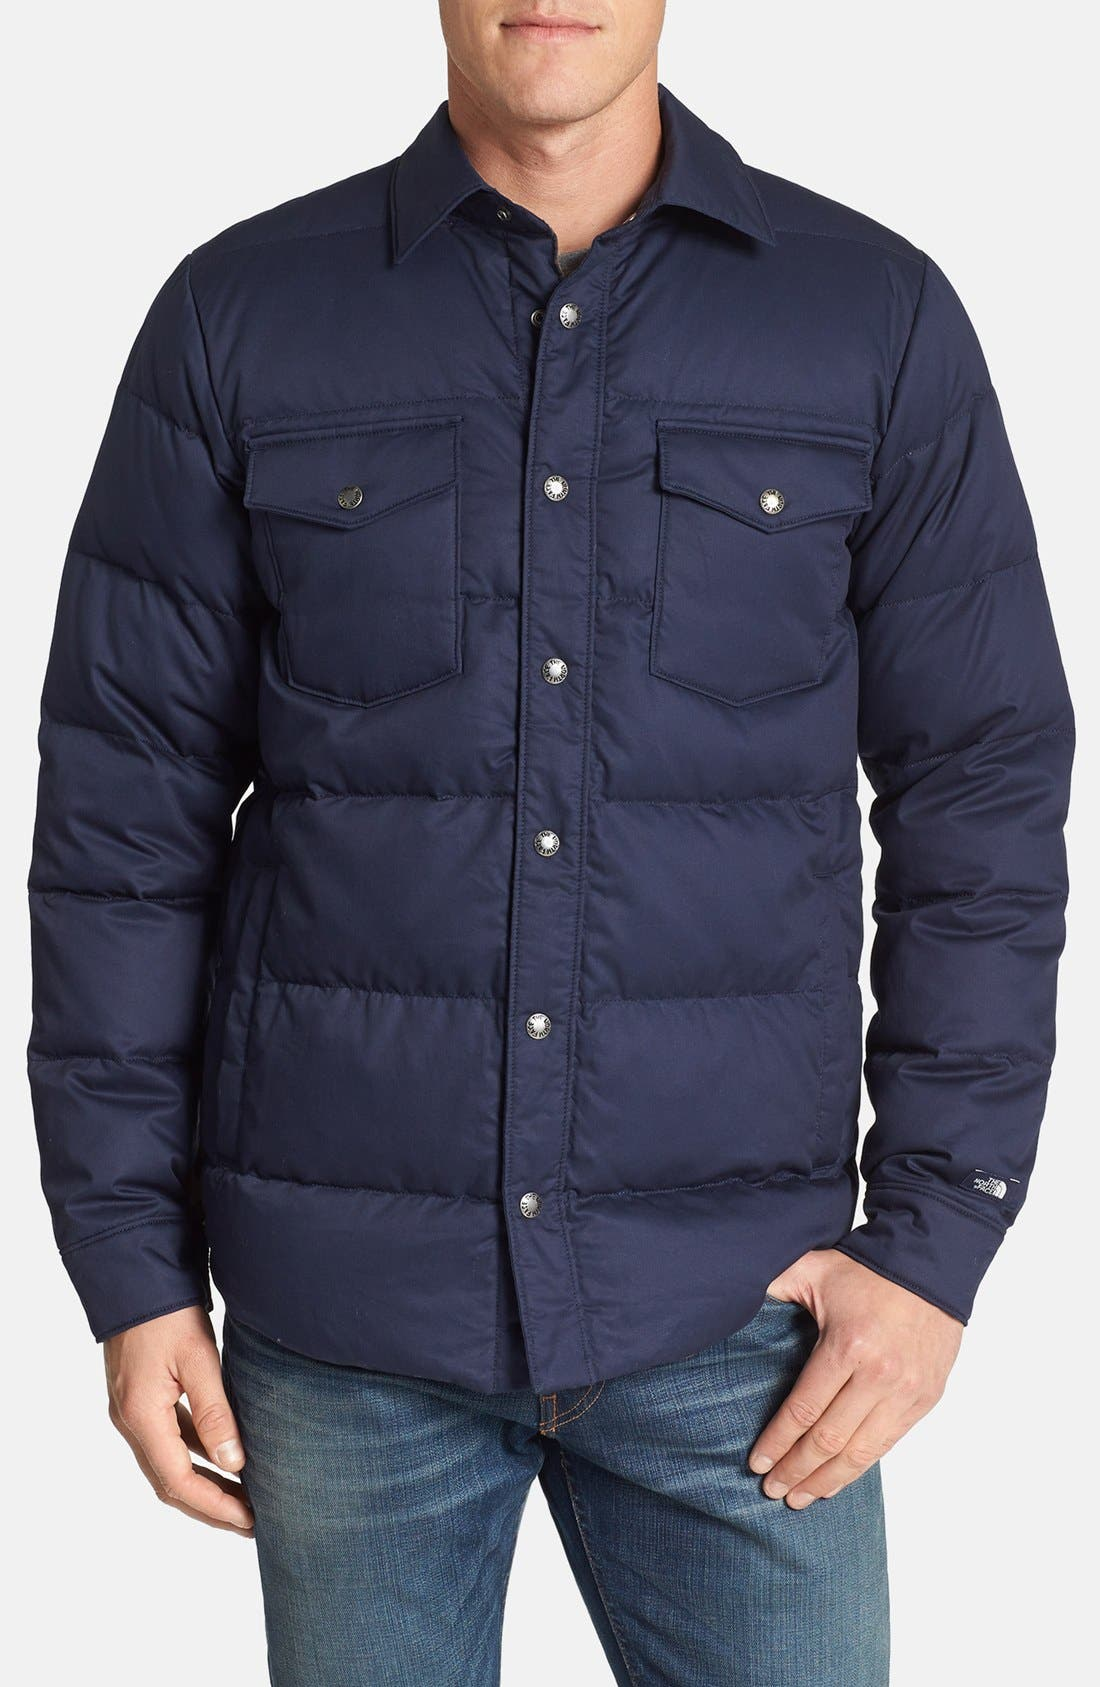 Alternate Image 1 Selected - The North Face 'Cook' Down Shirt Jacket